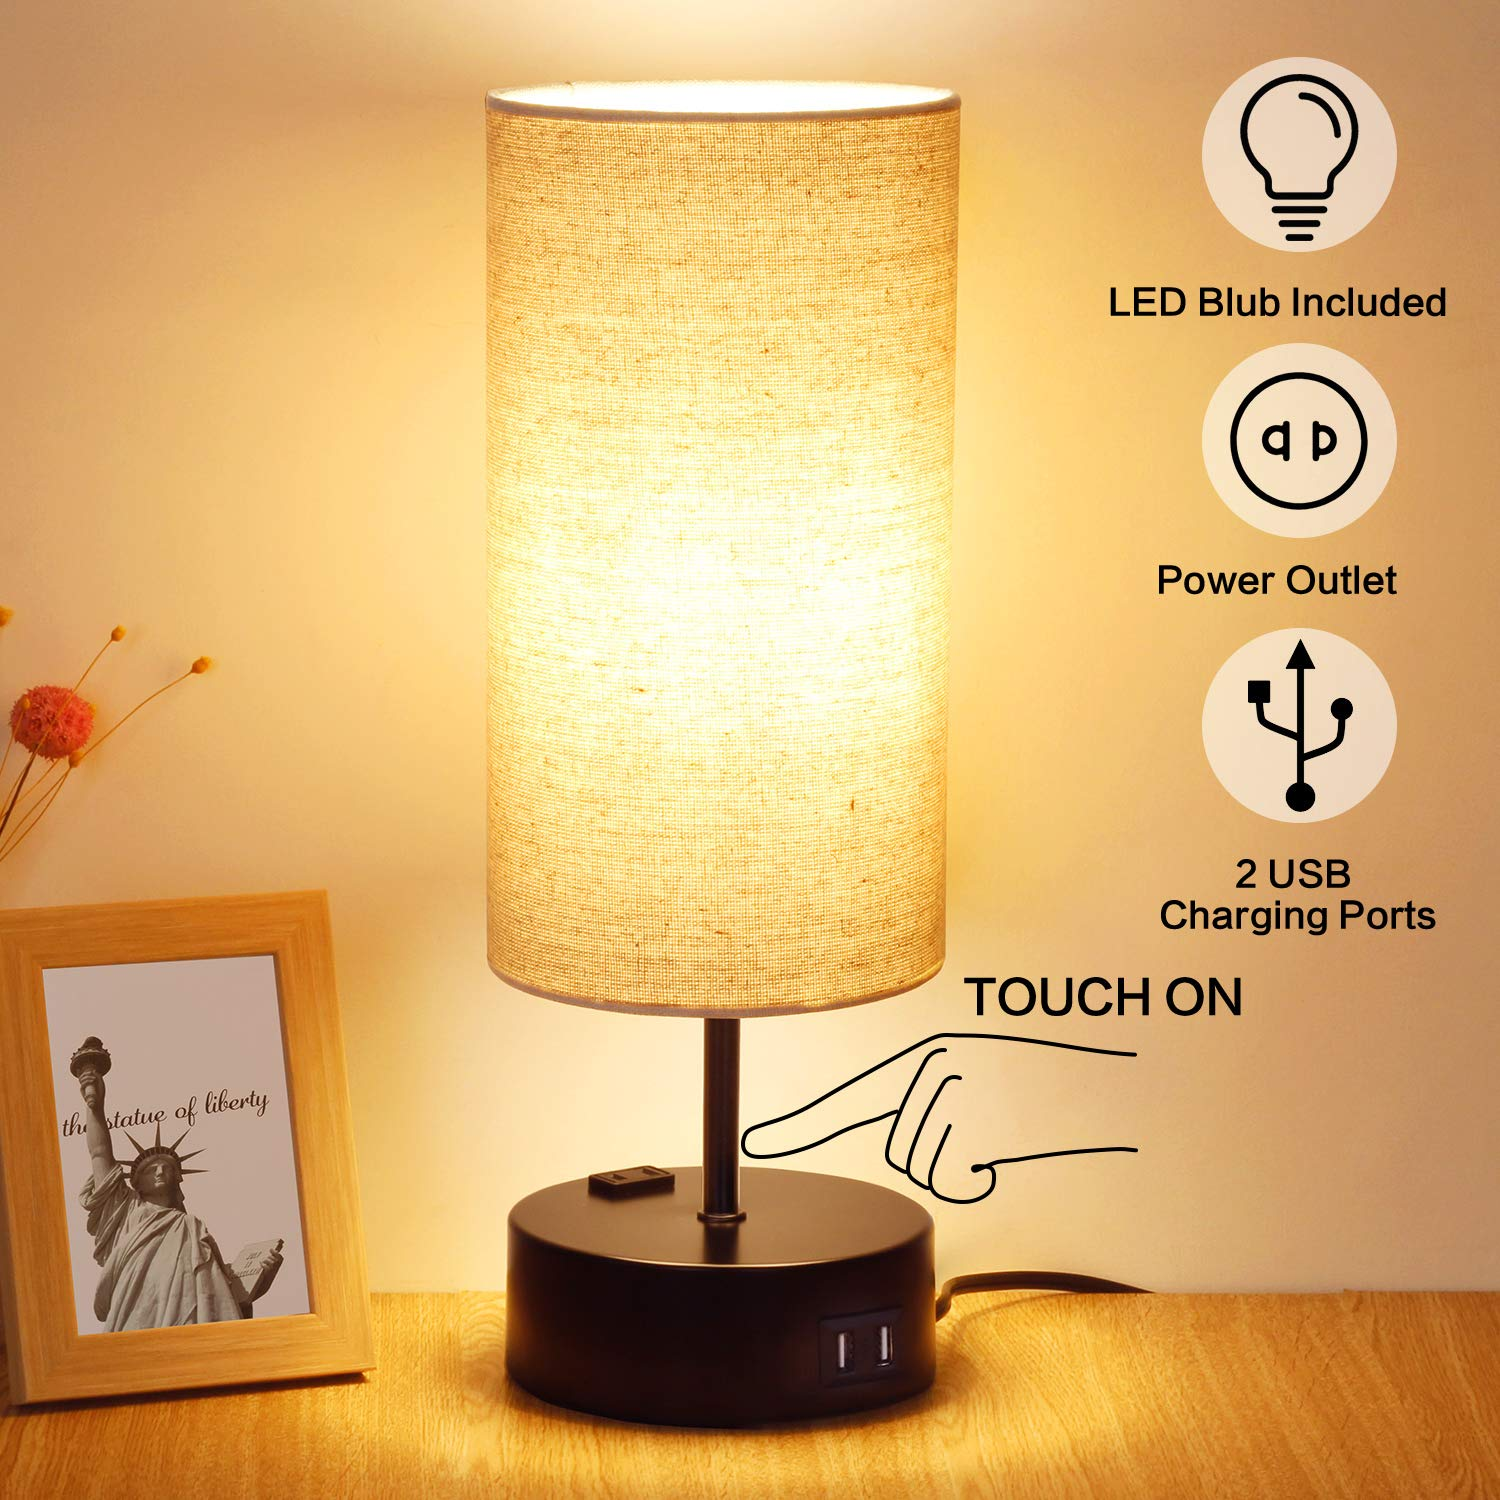 3 Way Dimmable Touch Table Lamp, 2 Fast Charging USB Ports with Power Outlet. Bedside Touch Lamp, Nightstand Lamp, Bedroom Lamp for Bedroom, Living Room, Office, 60W Equivalent LED Bulb Included by SHINE HAI